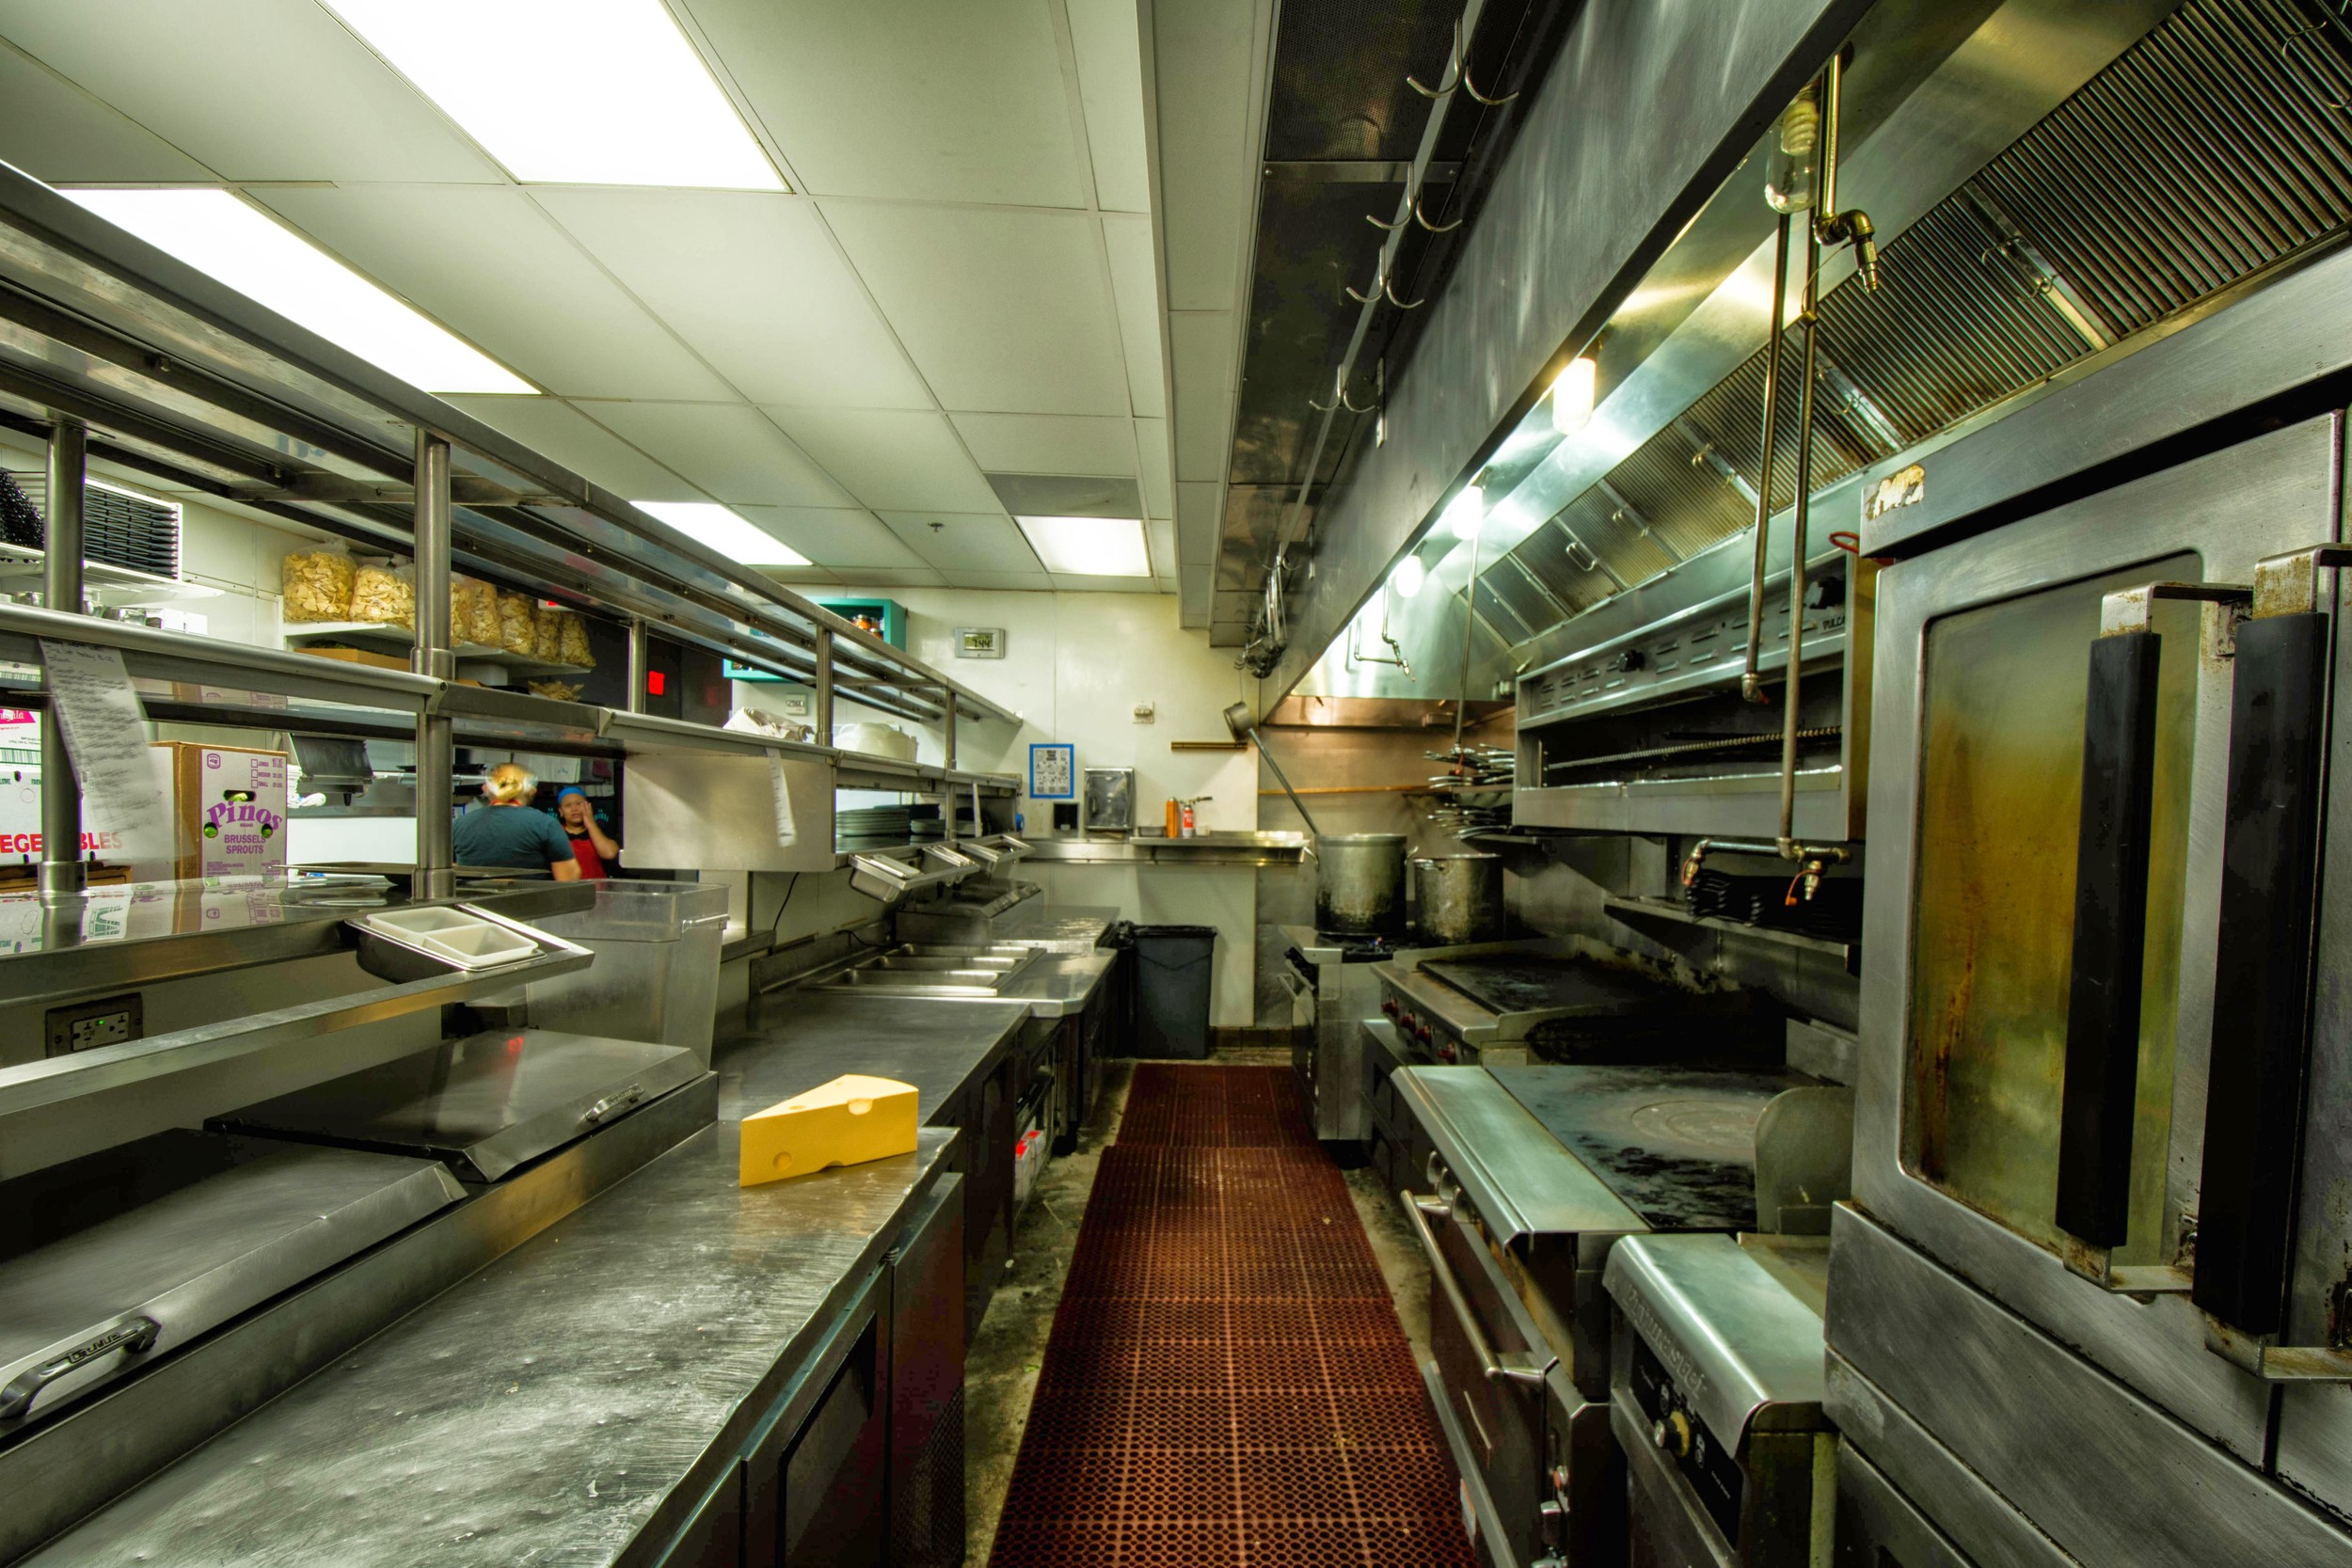 commercial-kitchen-photo.jpg